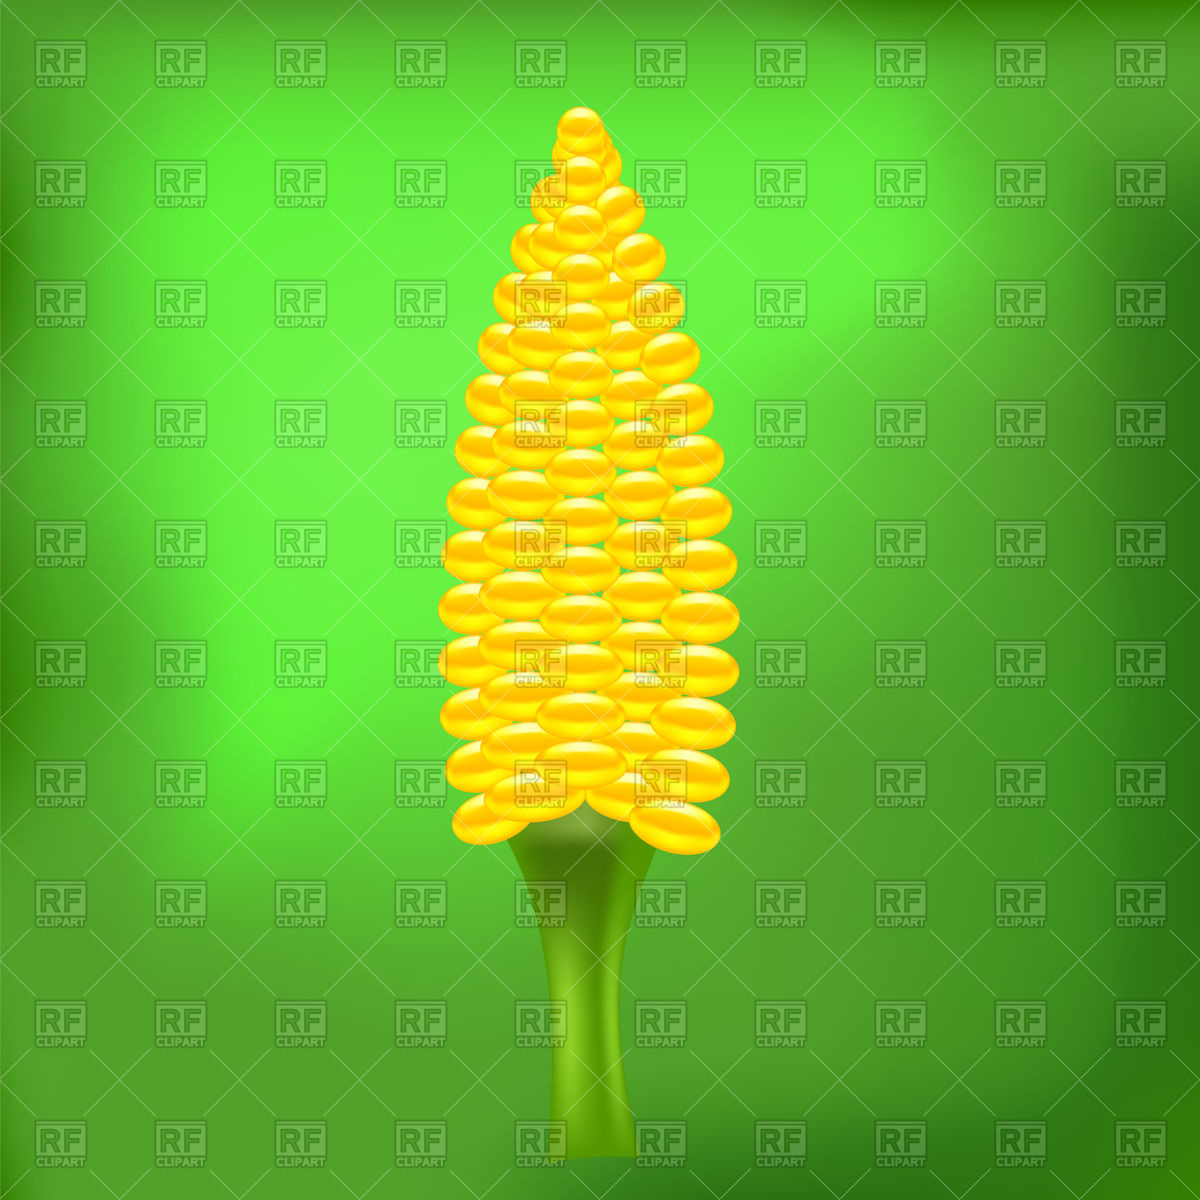 Yellow Cab Corn On Abstract Green Background 76964 Download Royalty